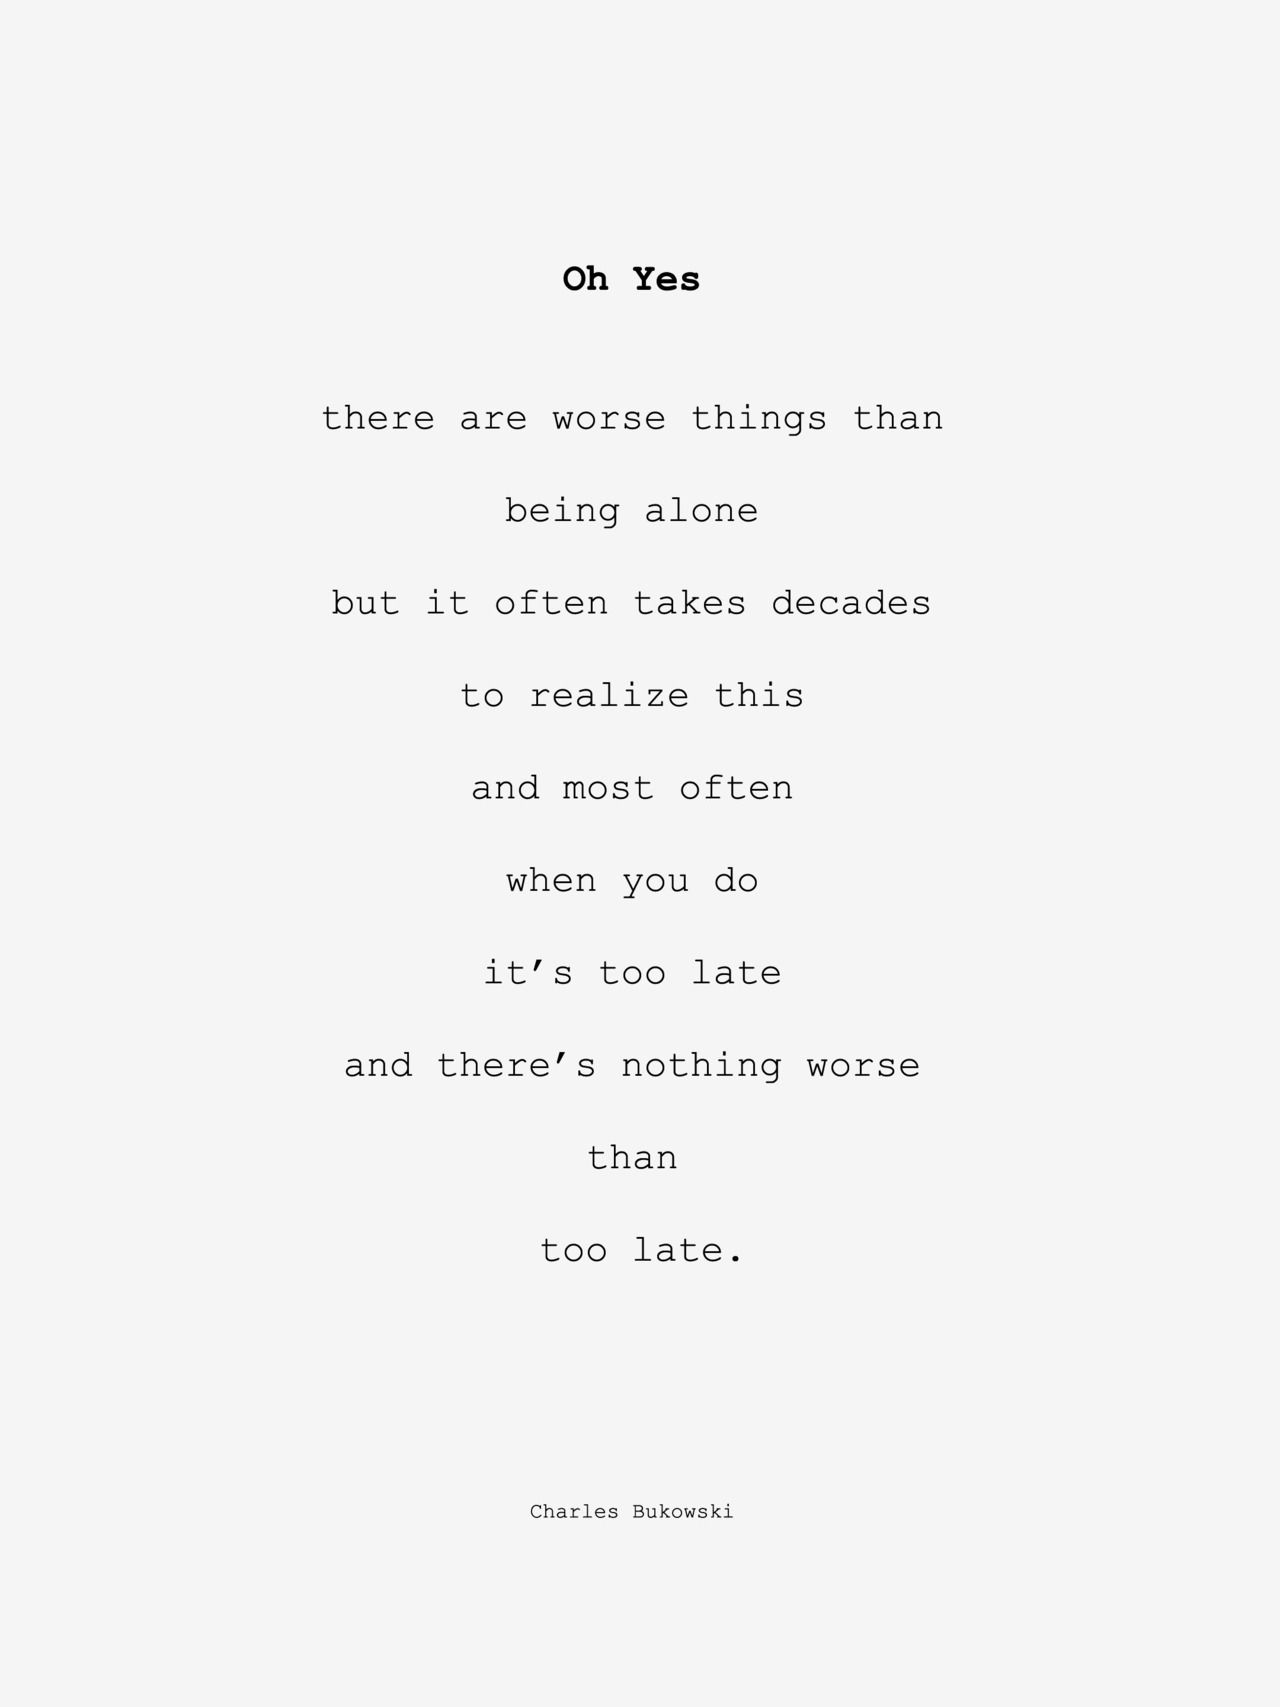 Poemas De Charles Bukowski Sobre El Amor There Are Worse Things Than Being Alone But It Often Takes Decades